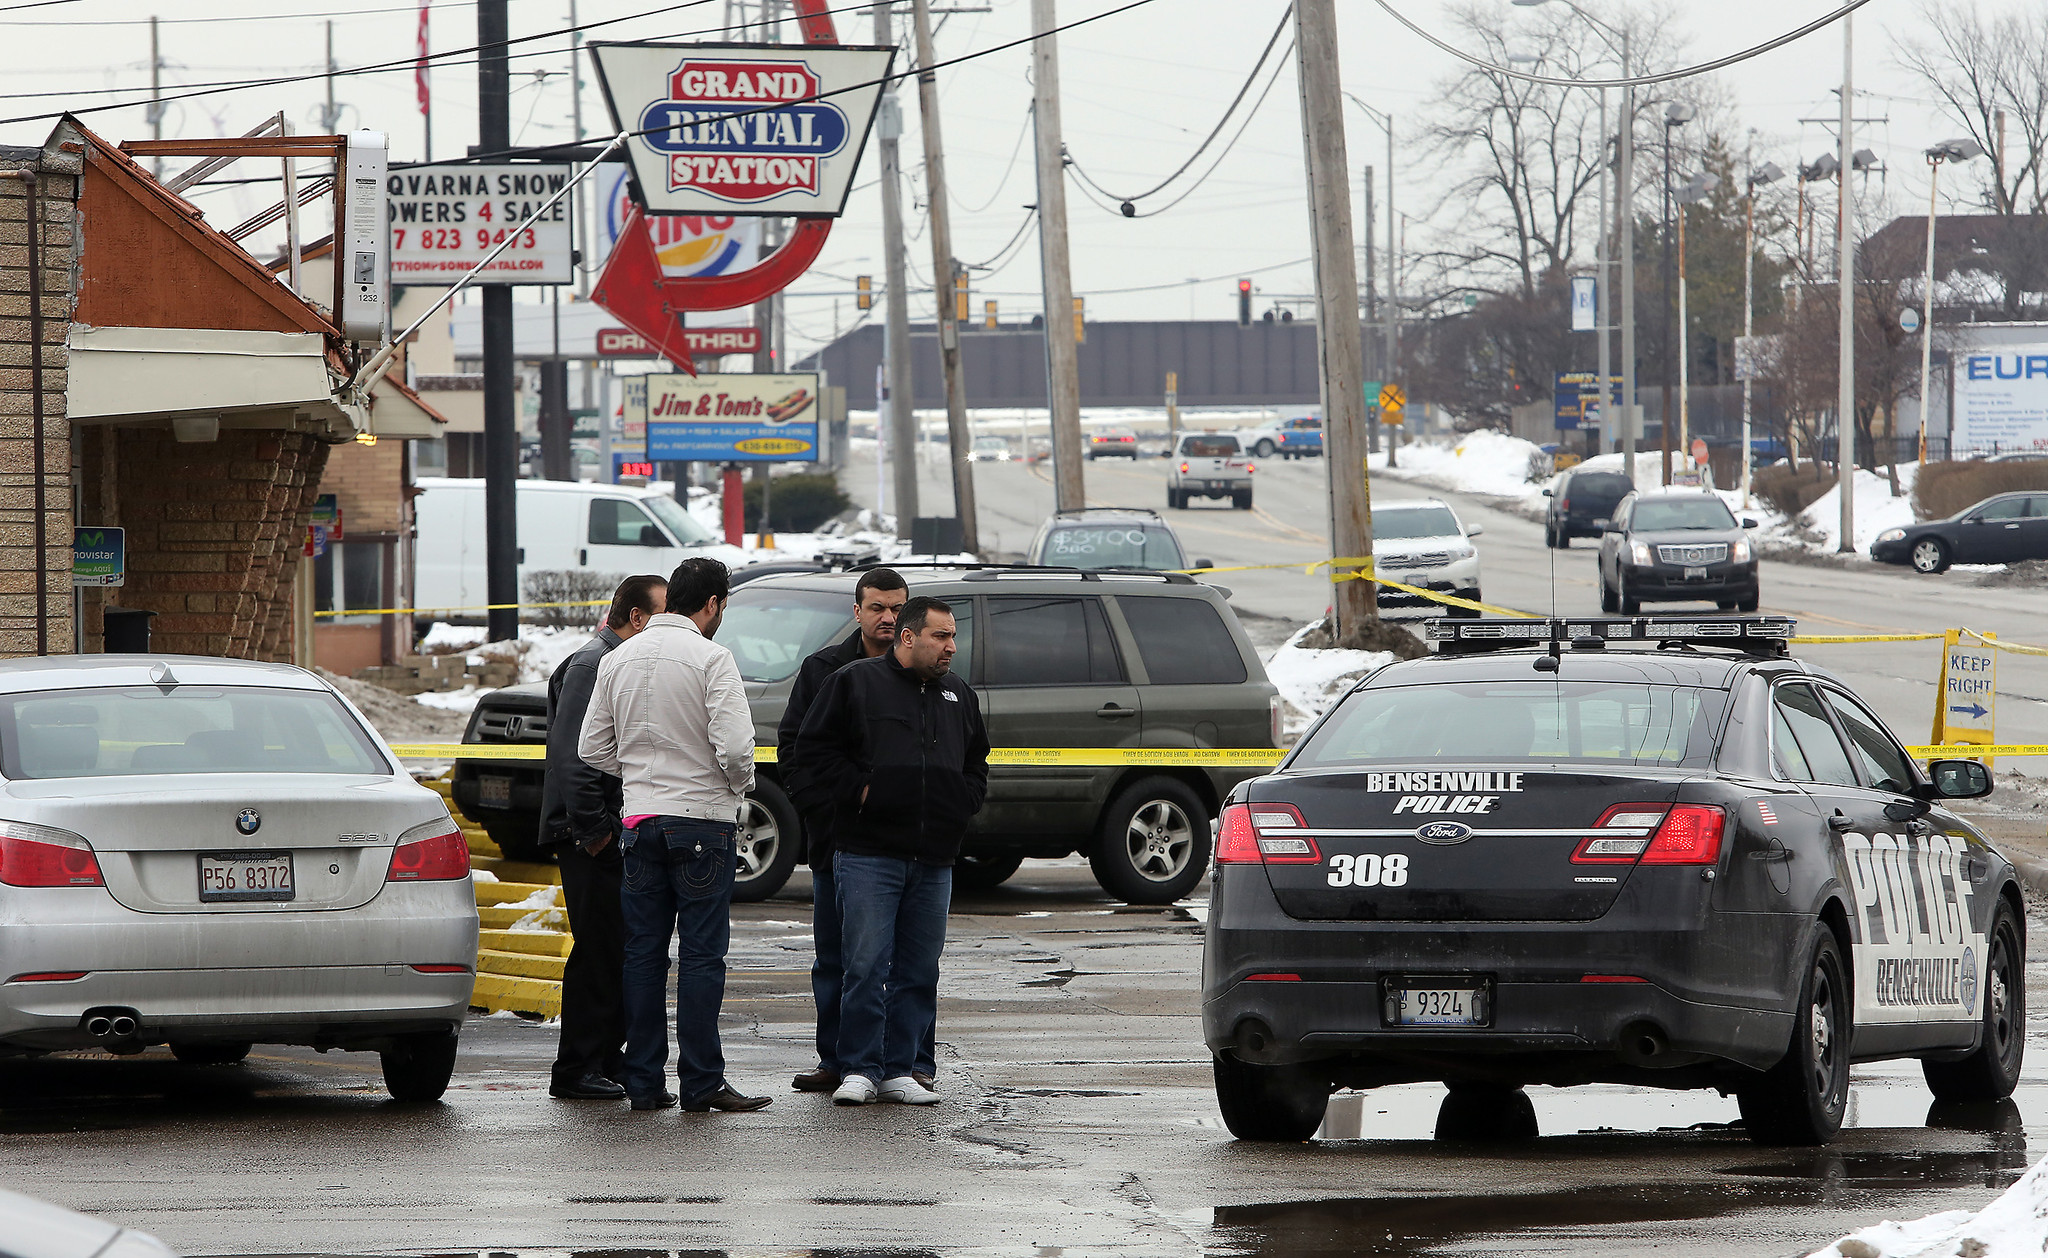 bensenville guys Bellwood man sentenced to 22 years in prison - elmhurst, il - bensenville tobacco store owner hussein saghir was murdered in 2014 while he was closing up his shop.